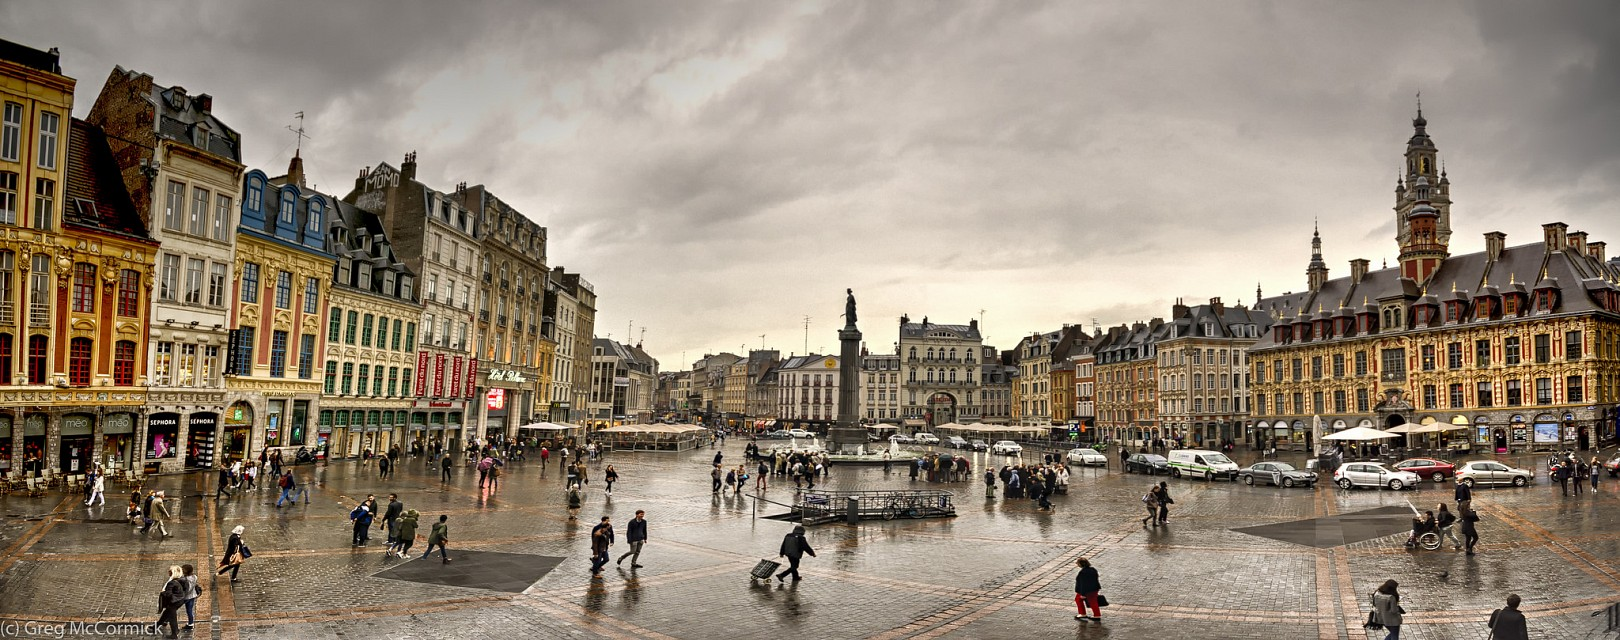 Grand Place II - Lille